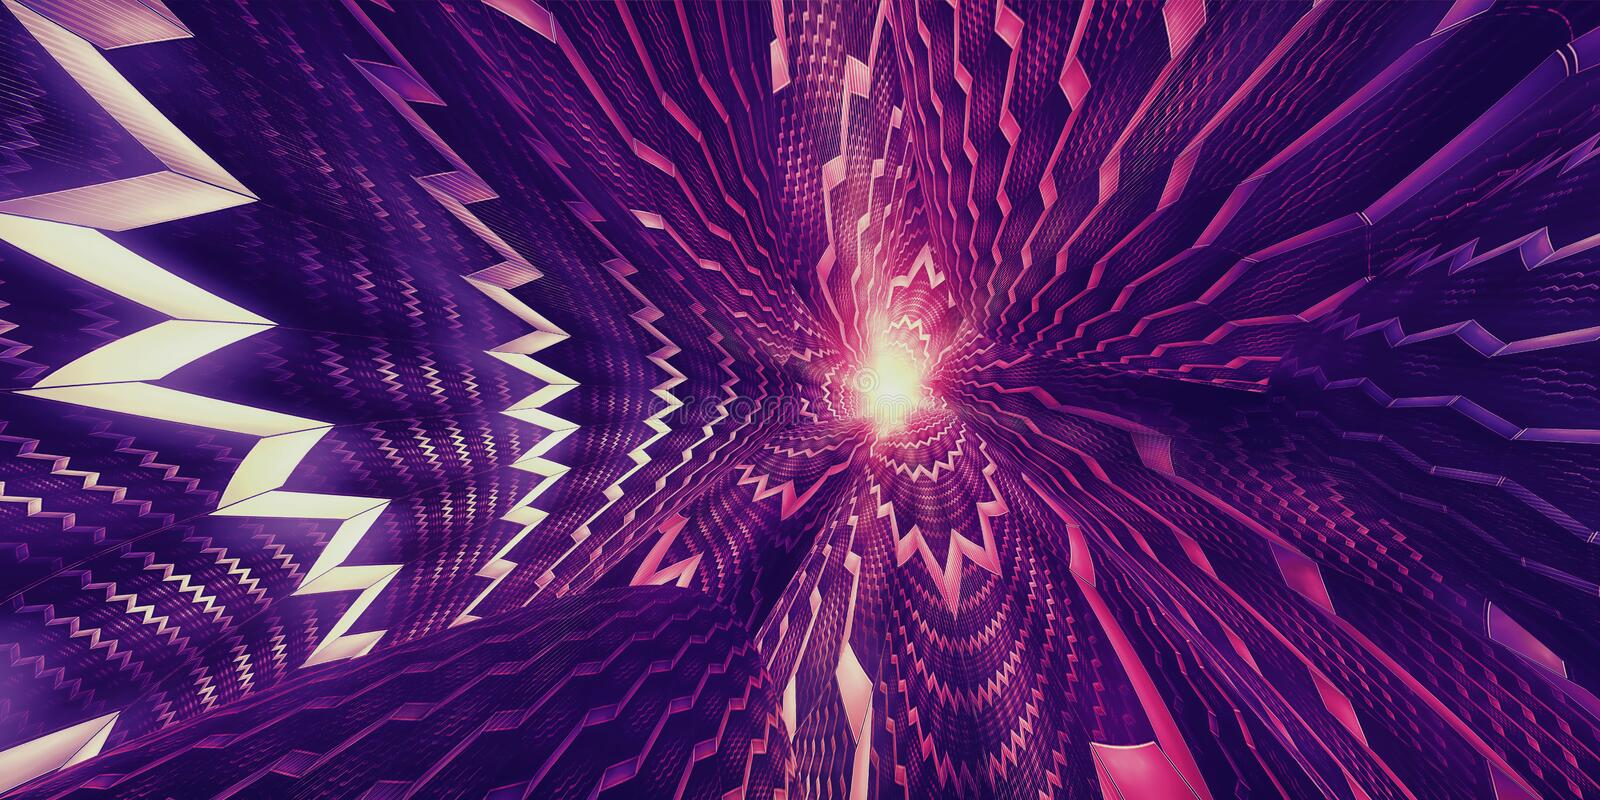 Abstract art background royalty free illustration